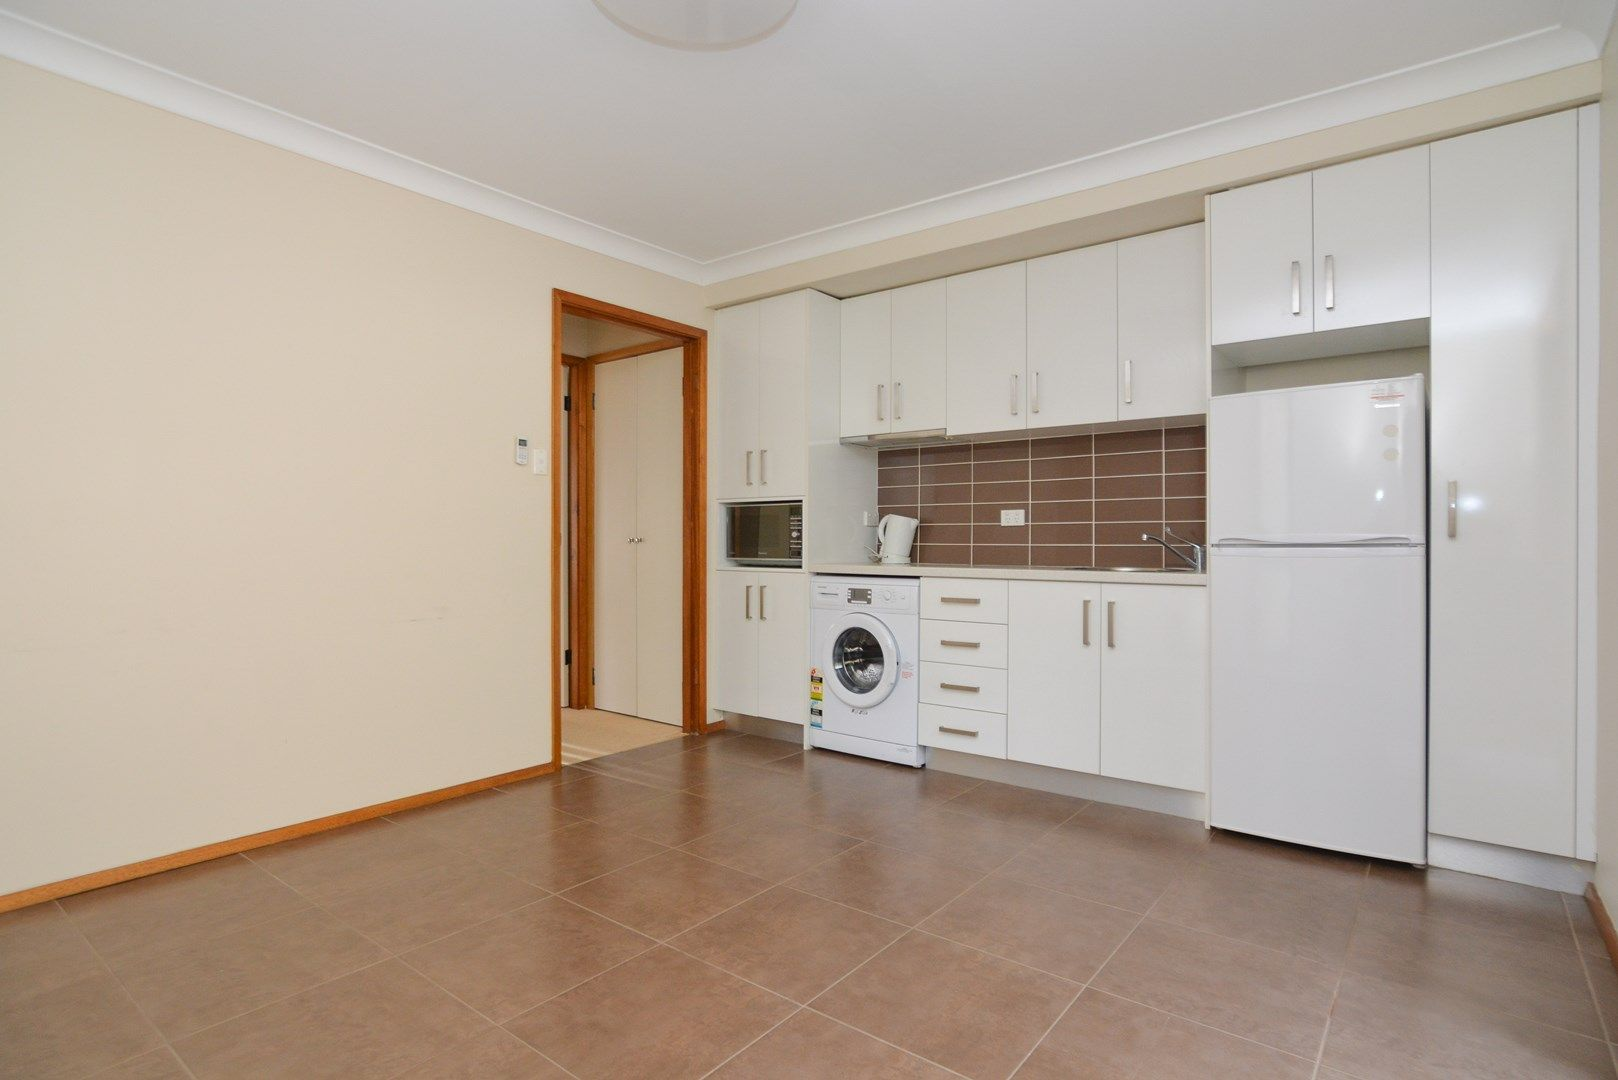 2/7 Spectrum Road, North Gosford NSW 2250, Image 0